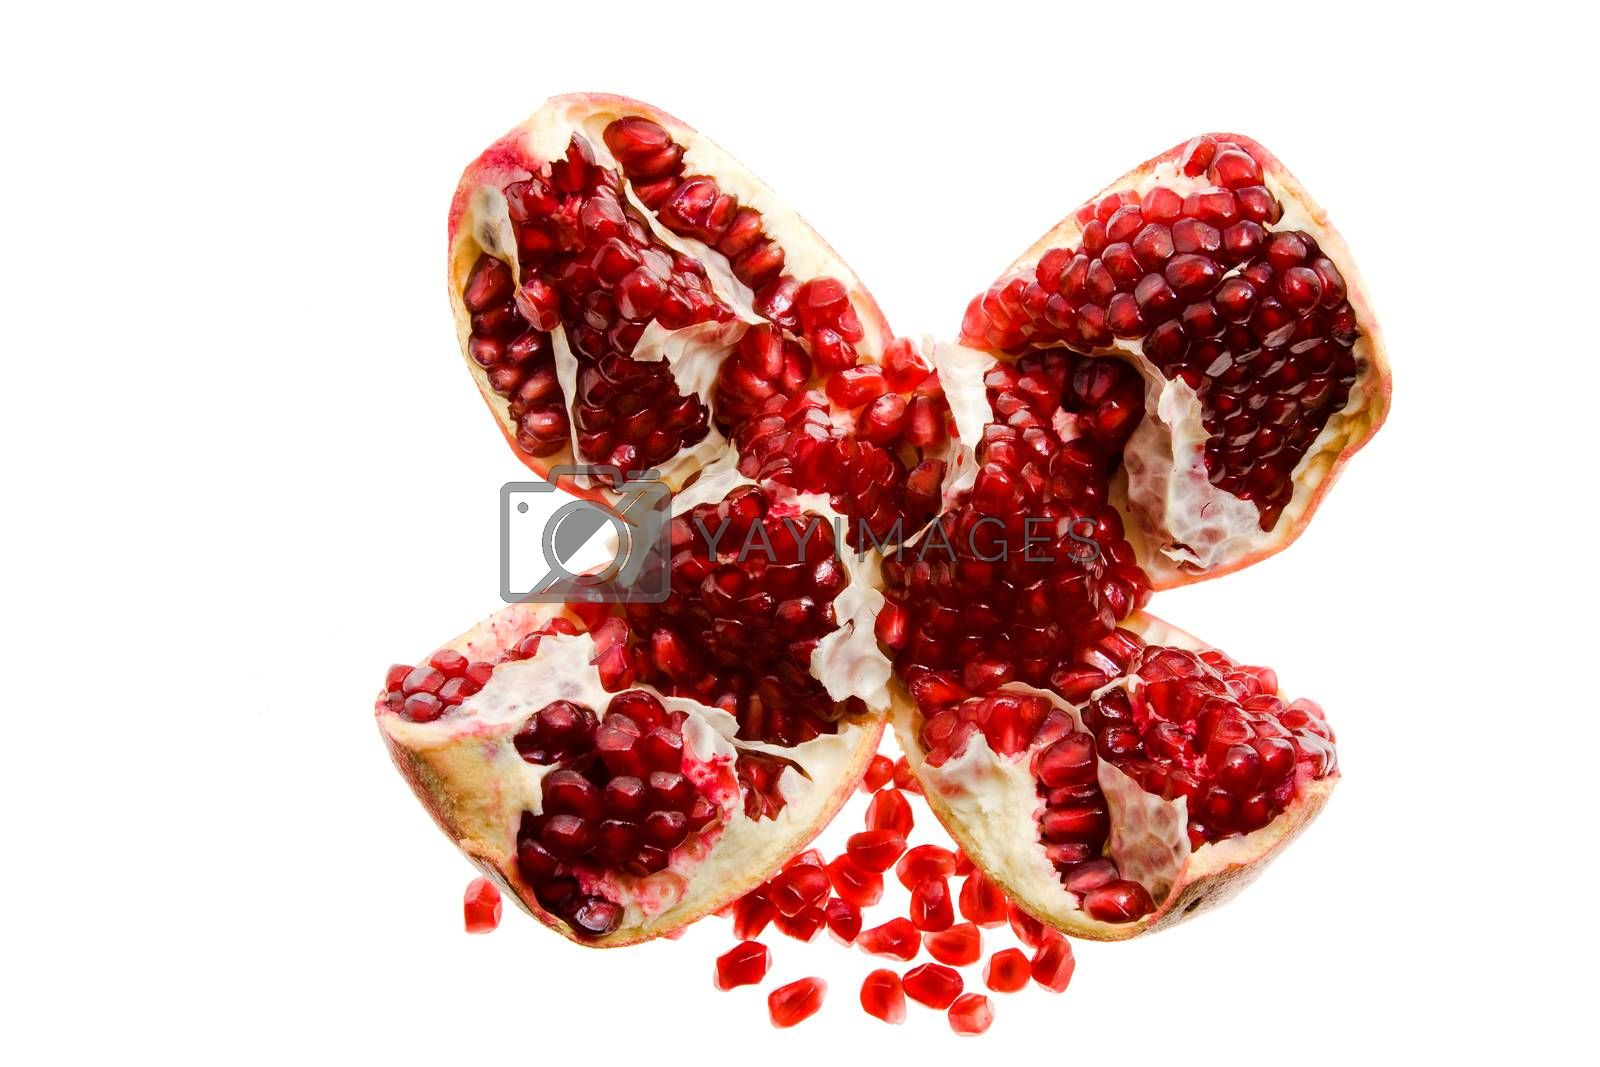 Royalty free image of Pomegranate by avq